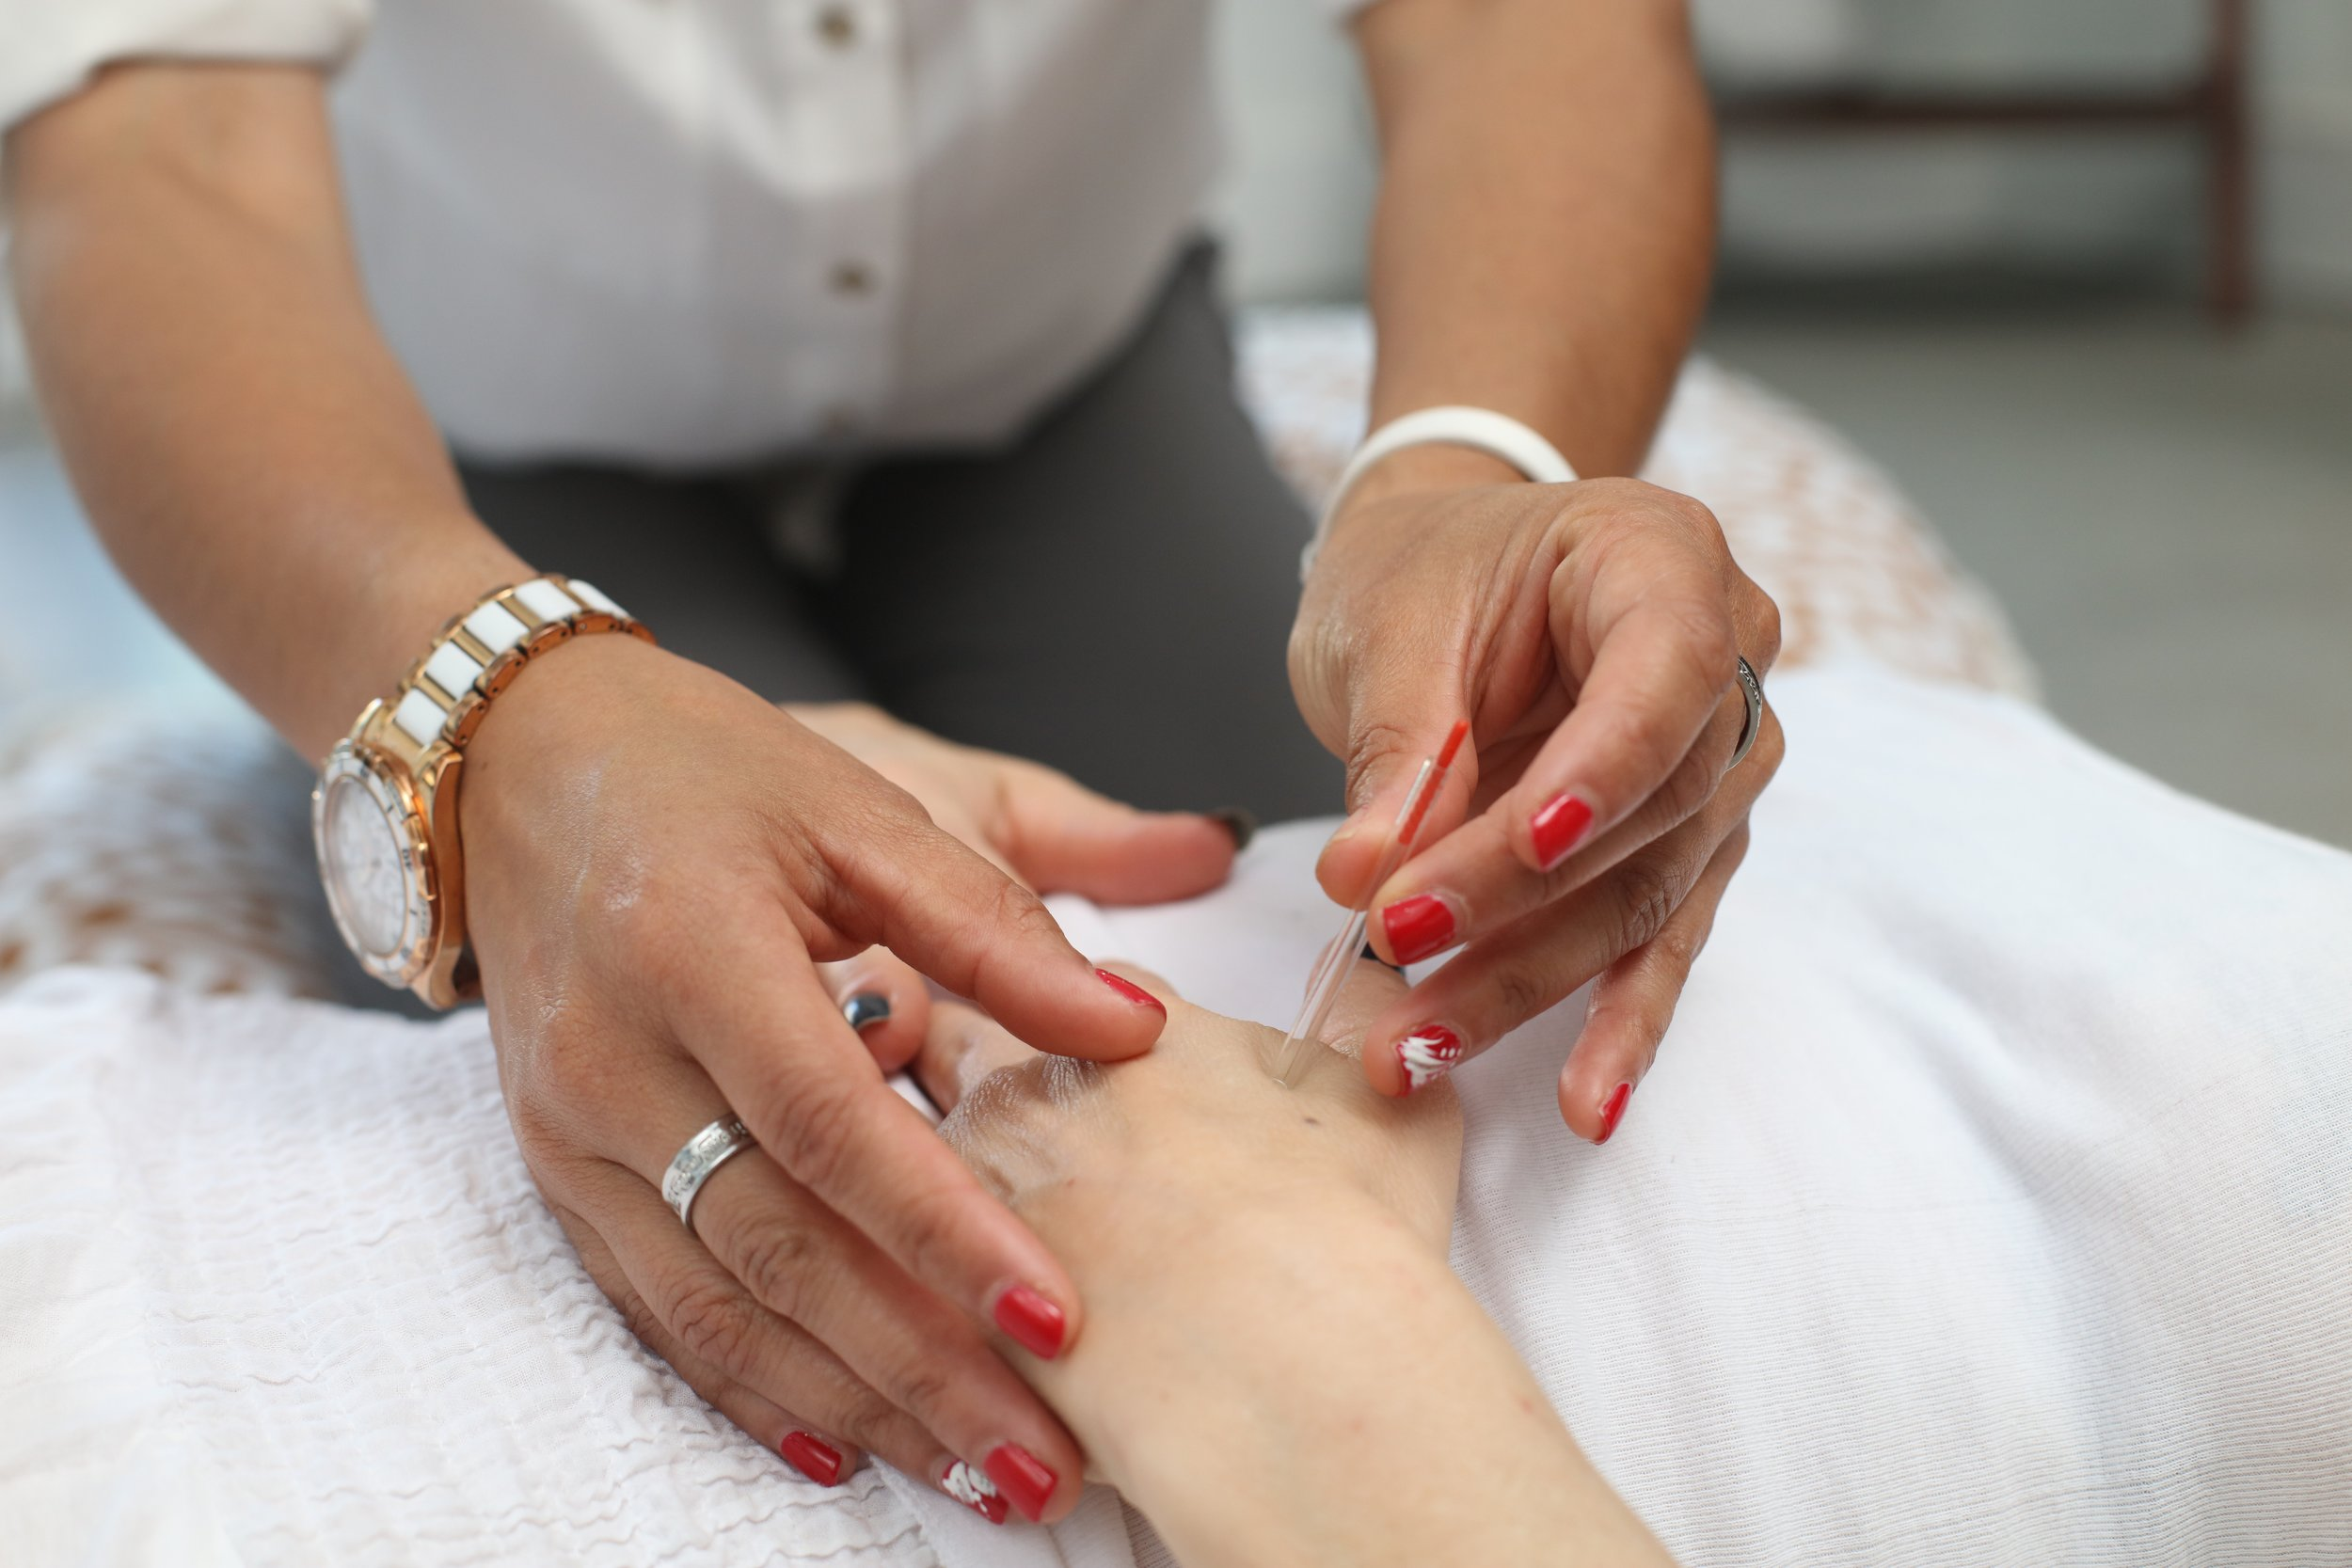 Acupuncture for Digestion Problems - We can help you from relieving symptoms of acid reflux, chronic diarrhea or constipation, weight gain, bloating, excess gas, to more serious manifestations of disease seach as GERD, IBS, UC, Crohn's Disease.